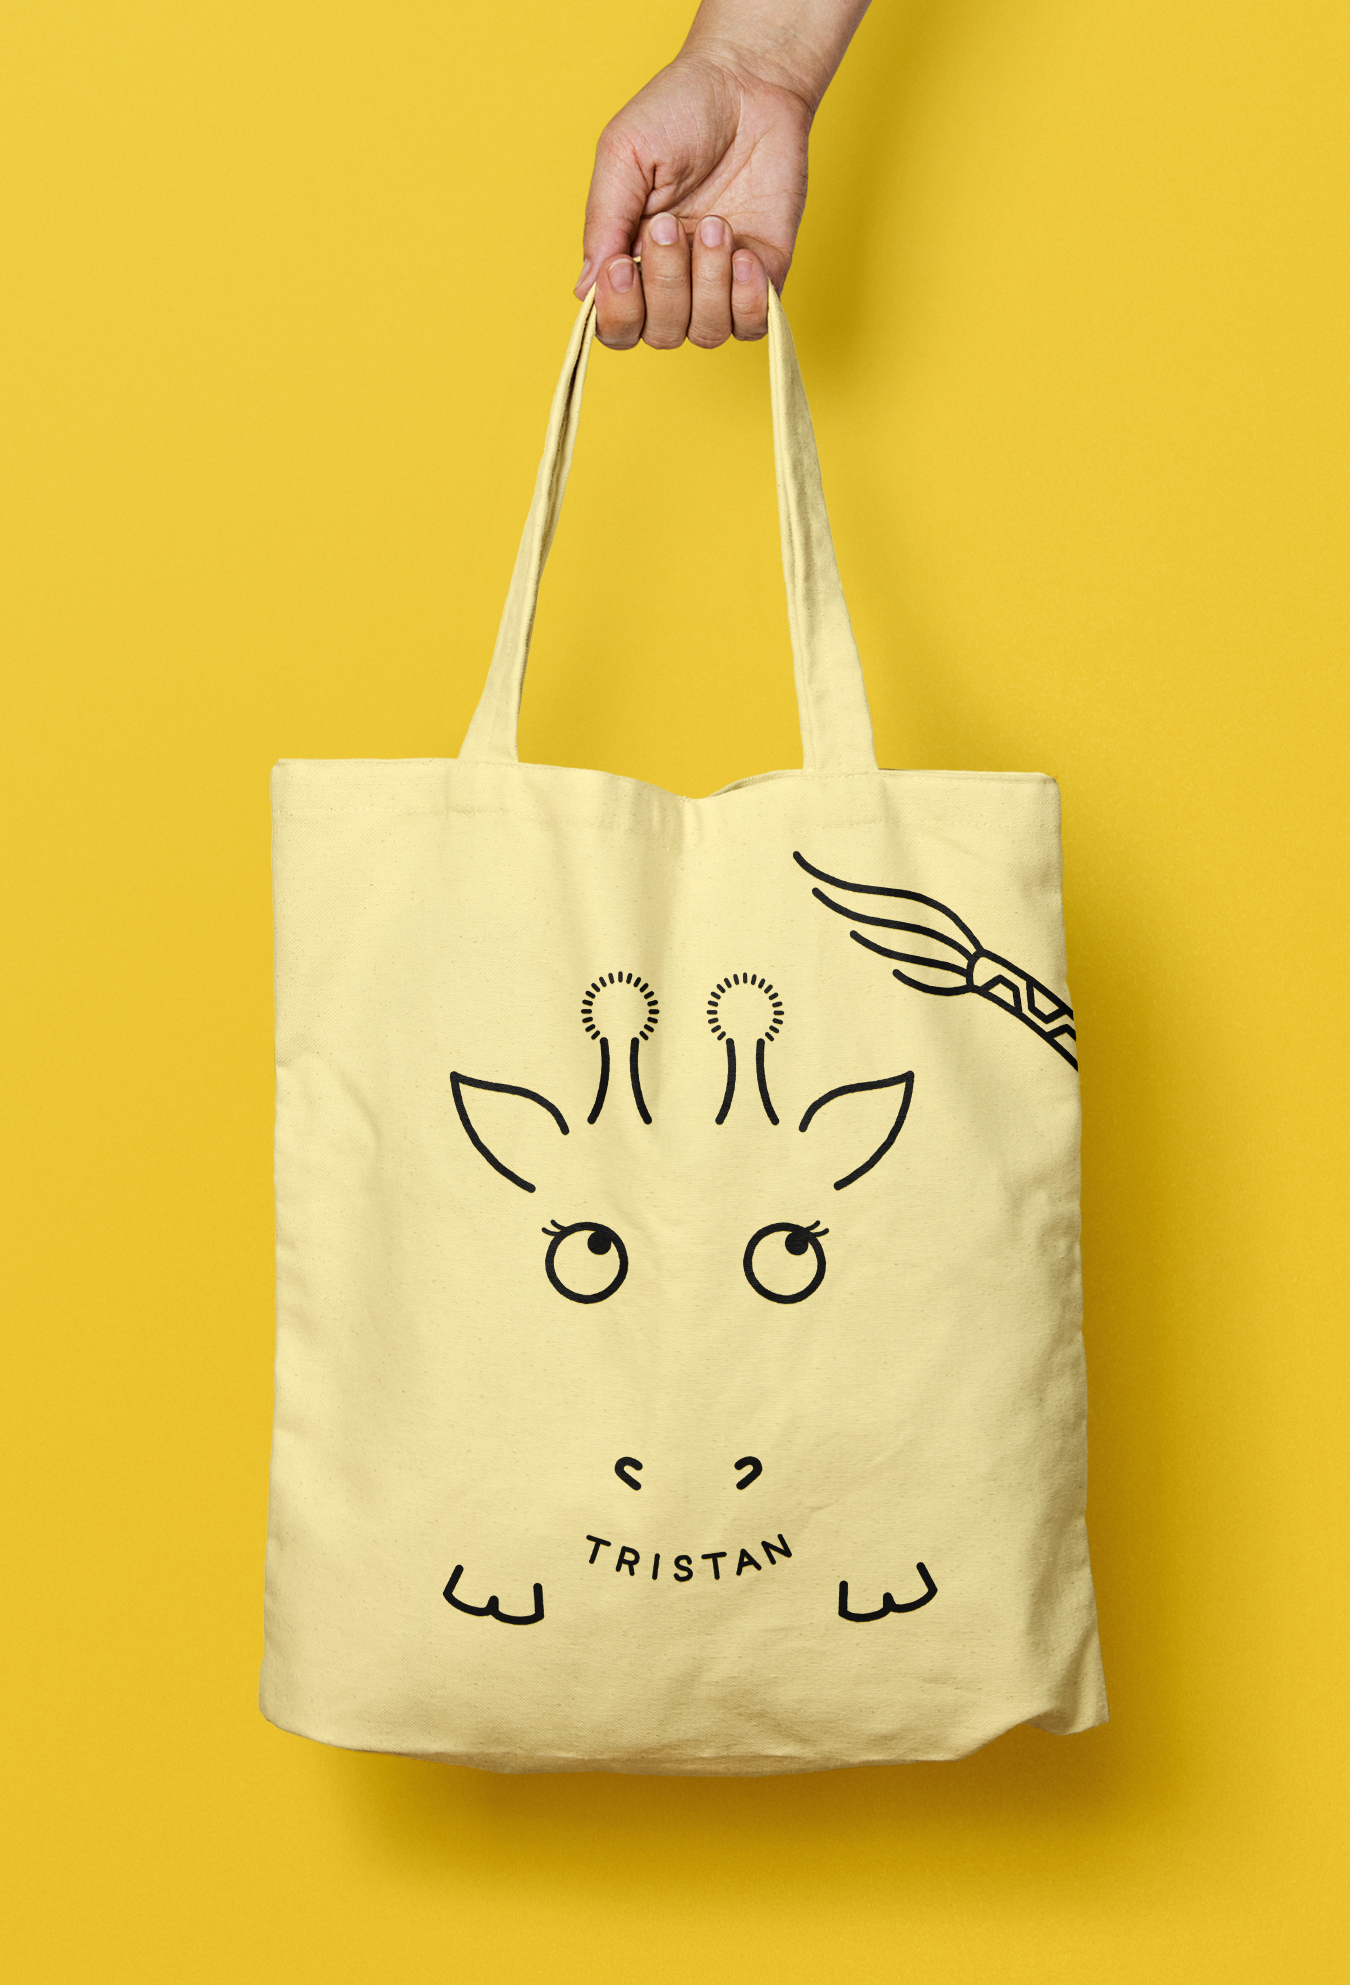 goldpaper-pauline-maury-zoo-new-totebags-design-graphique